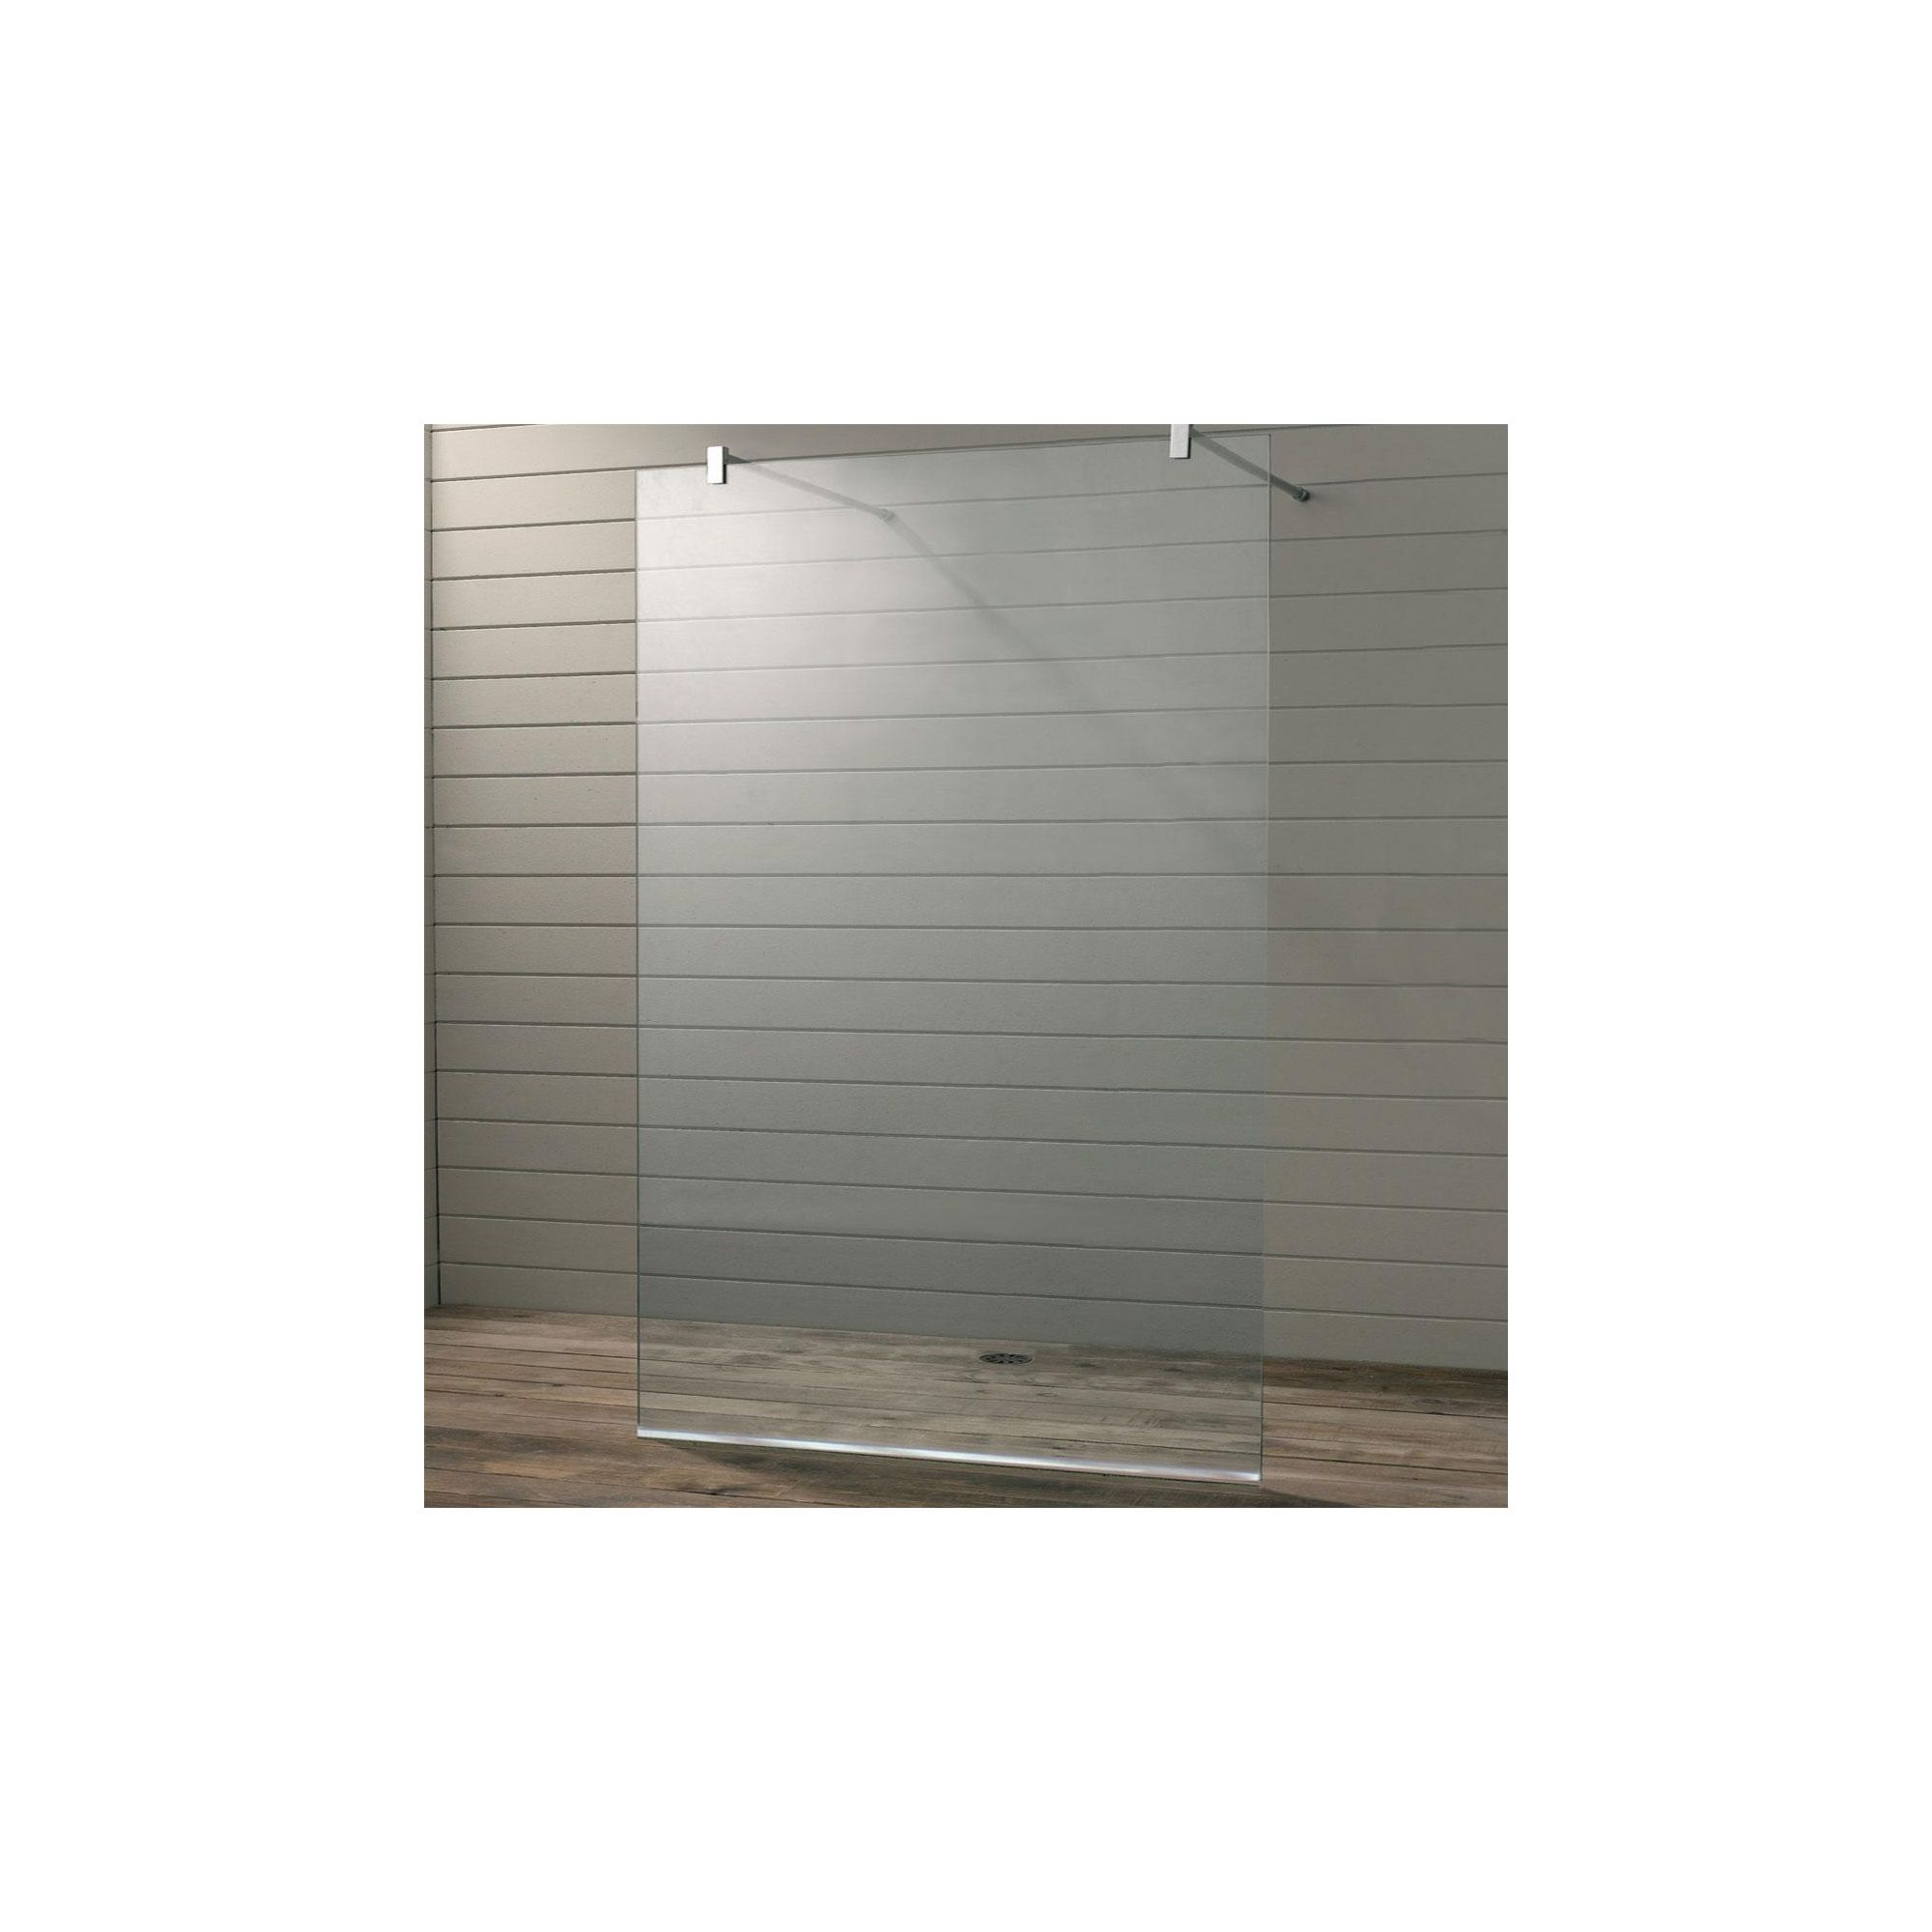 Duchy Premium Wet Room Glass Shower Panel, 1000mm x 1000mm, 10mm Glass, Low Profile Tray at Tesco Direct